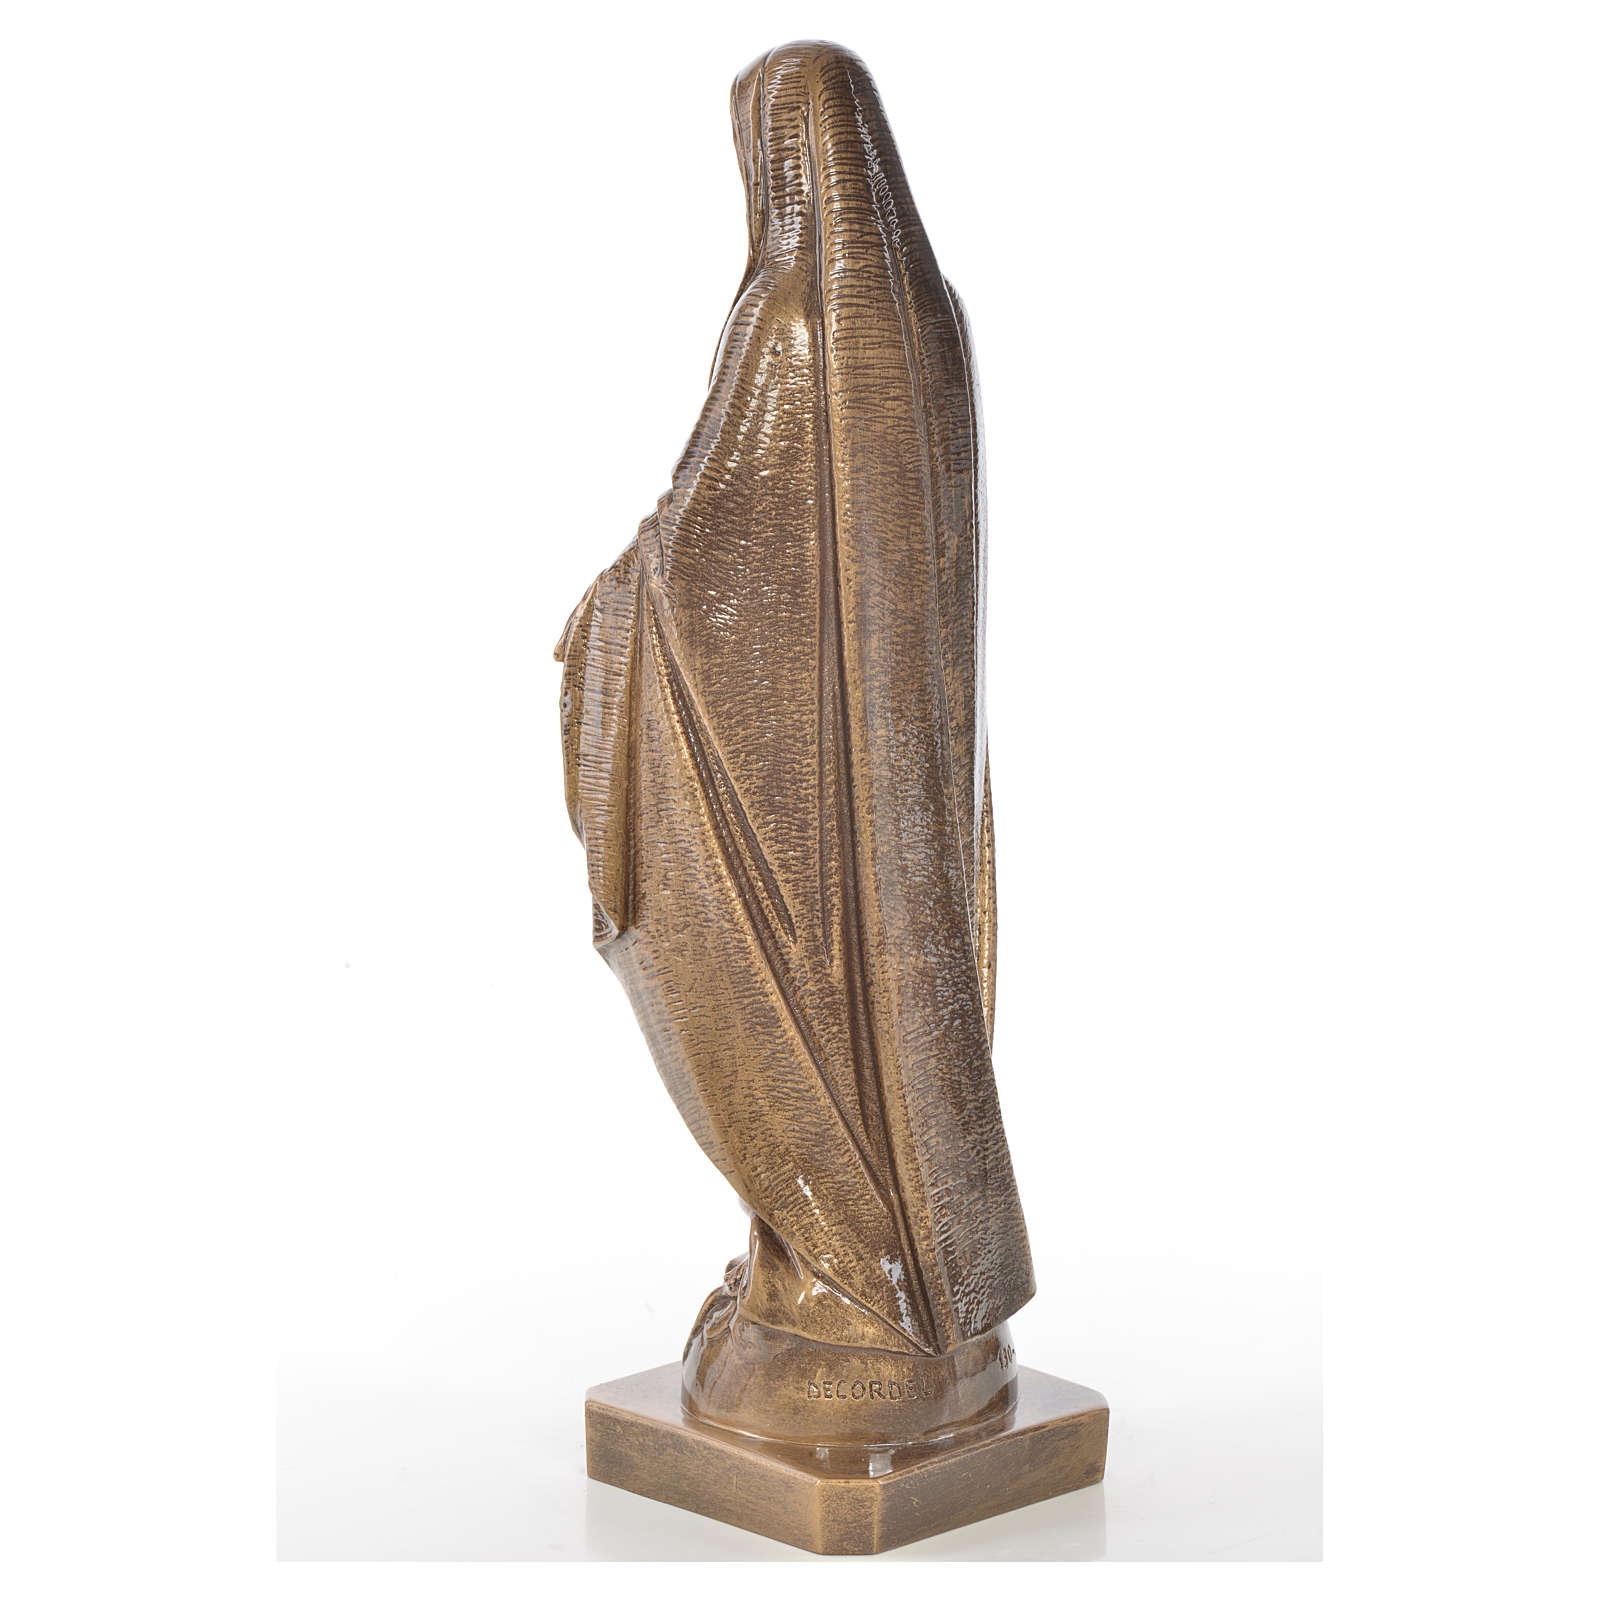 Miraculous Madonna in Carrara marble 19,69in bronze finish 4